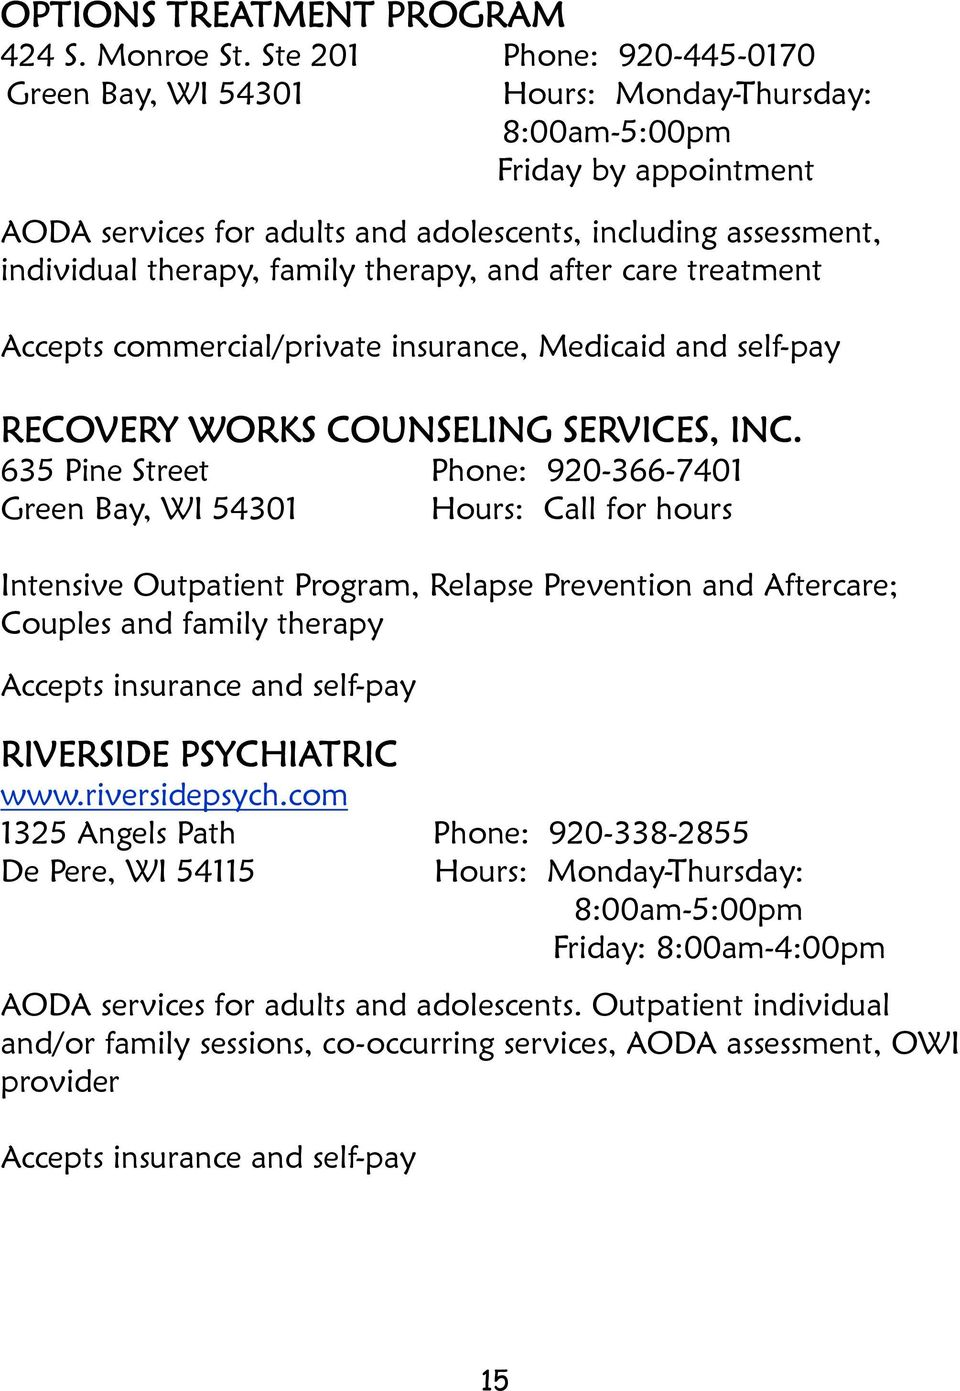 therapy, and after care treatment Accepts commercial/private insurance, Medicaid and self-pay RECOVERY WORKS COUNSELING SERVICES, INC.